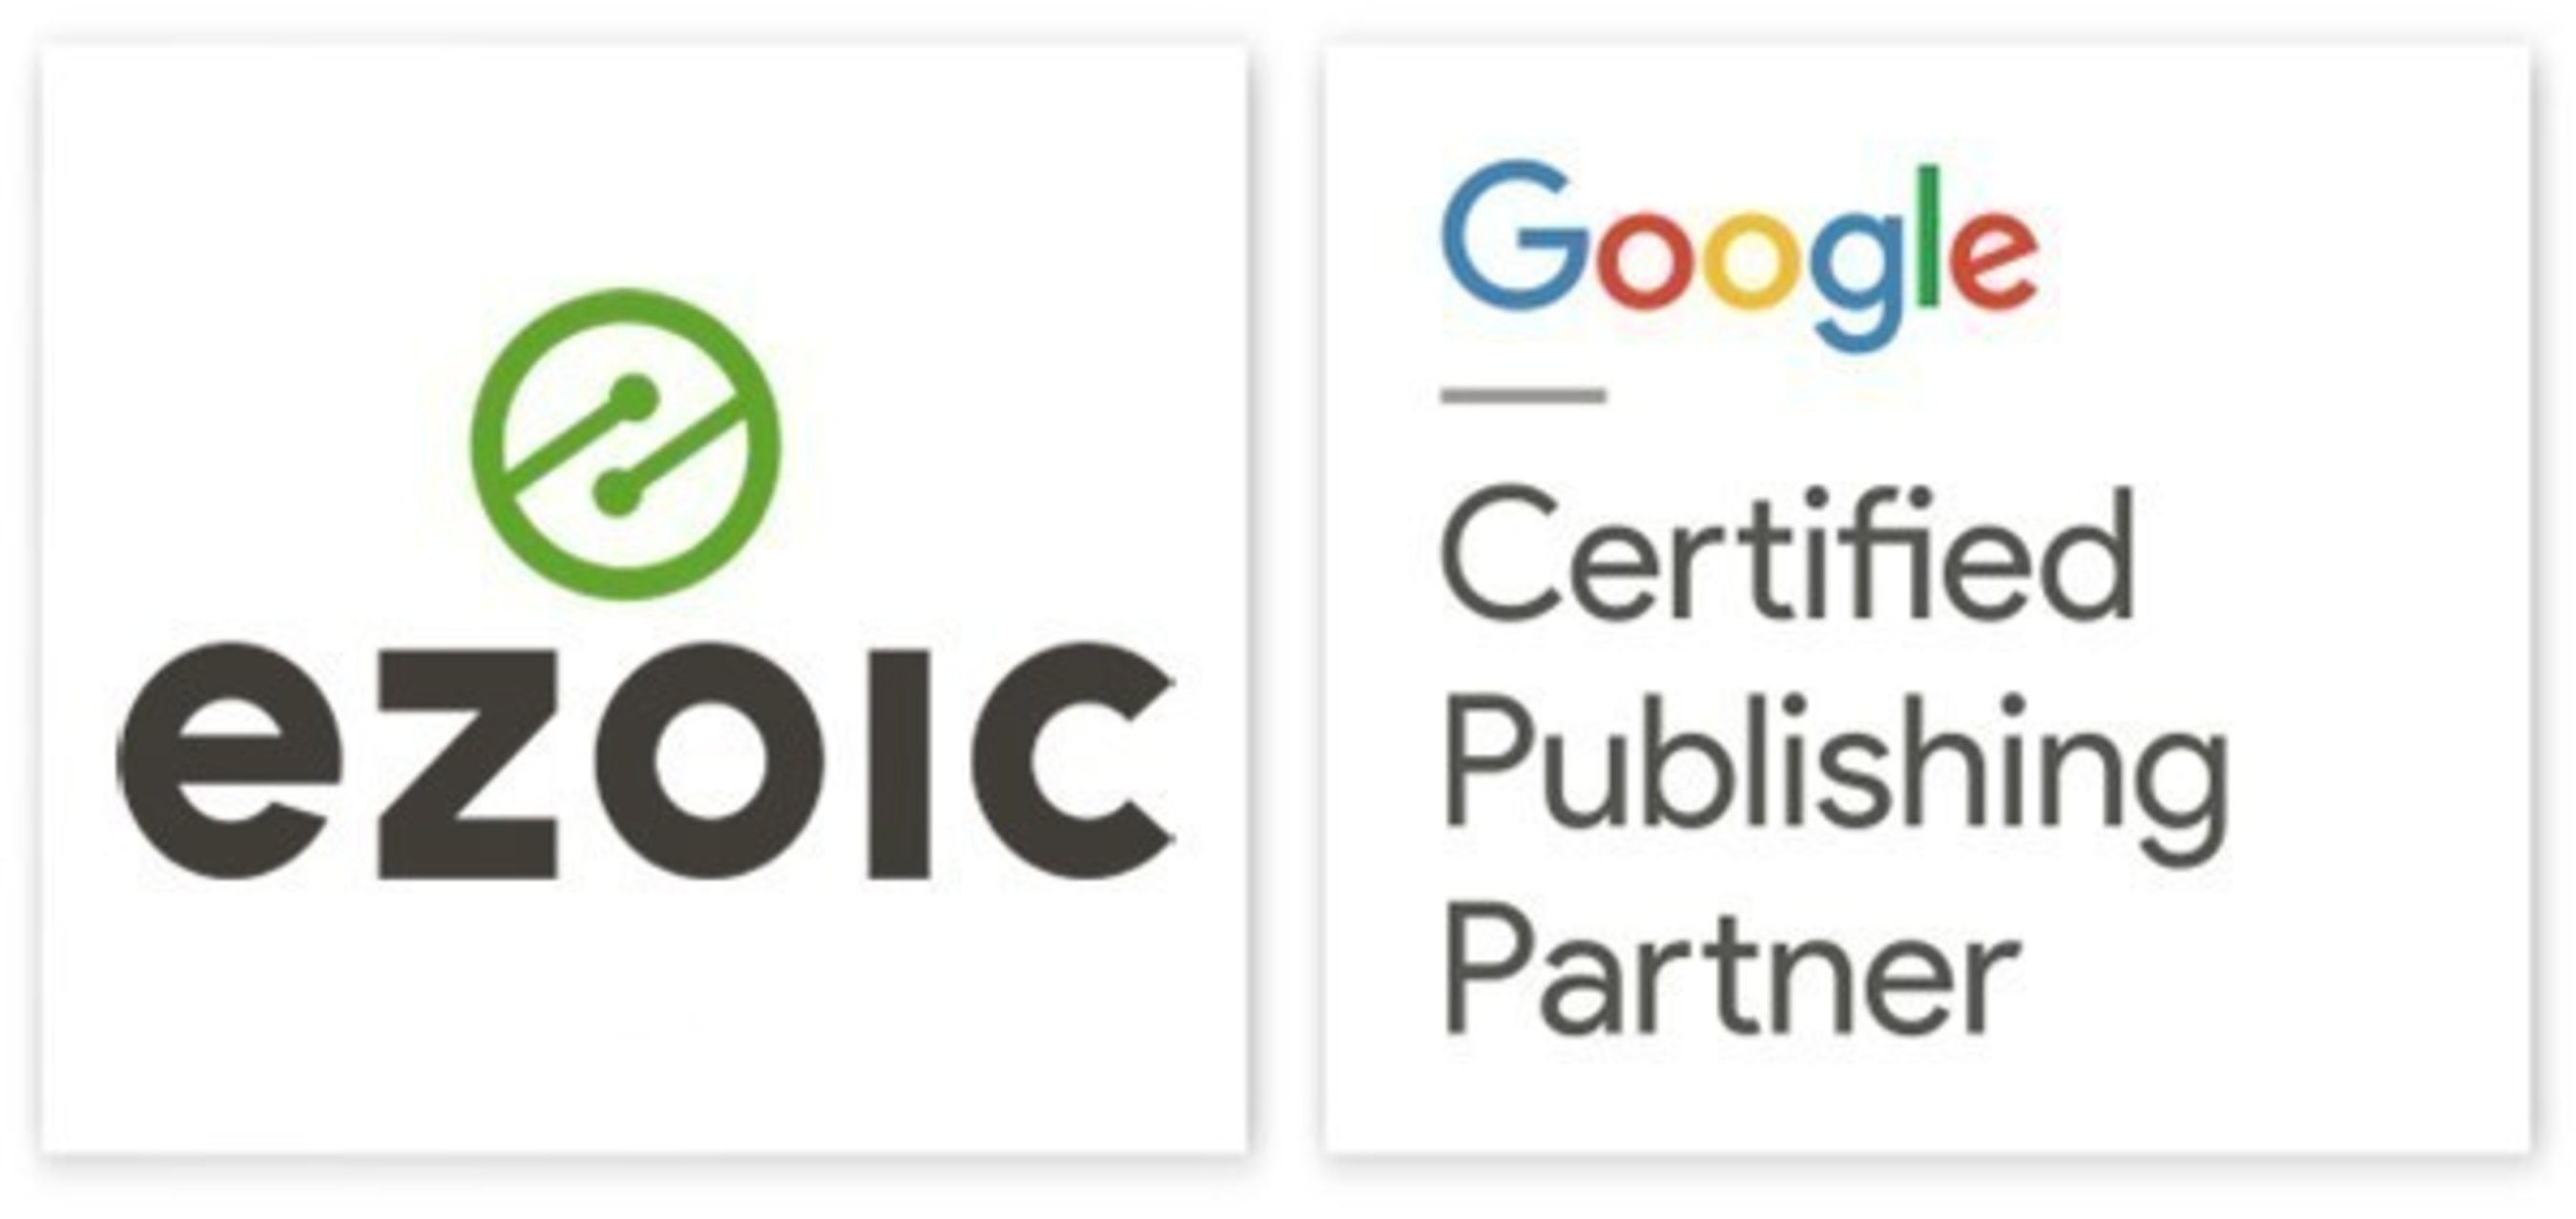 Ezoic chosen for new Google's Certified Publishing Partner Program.